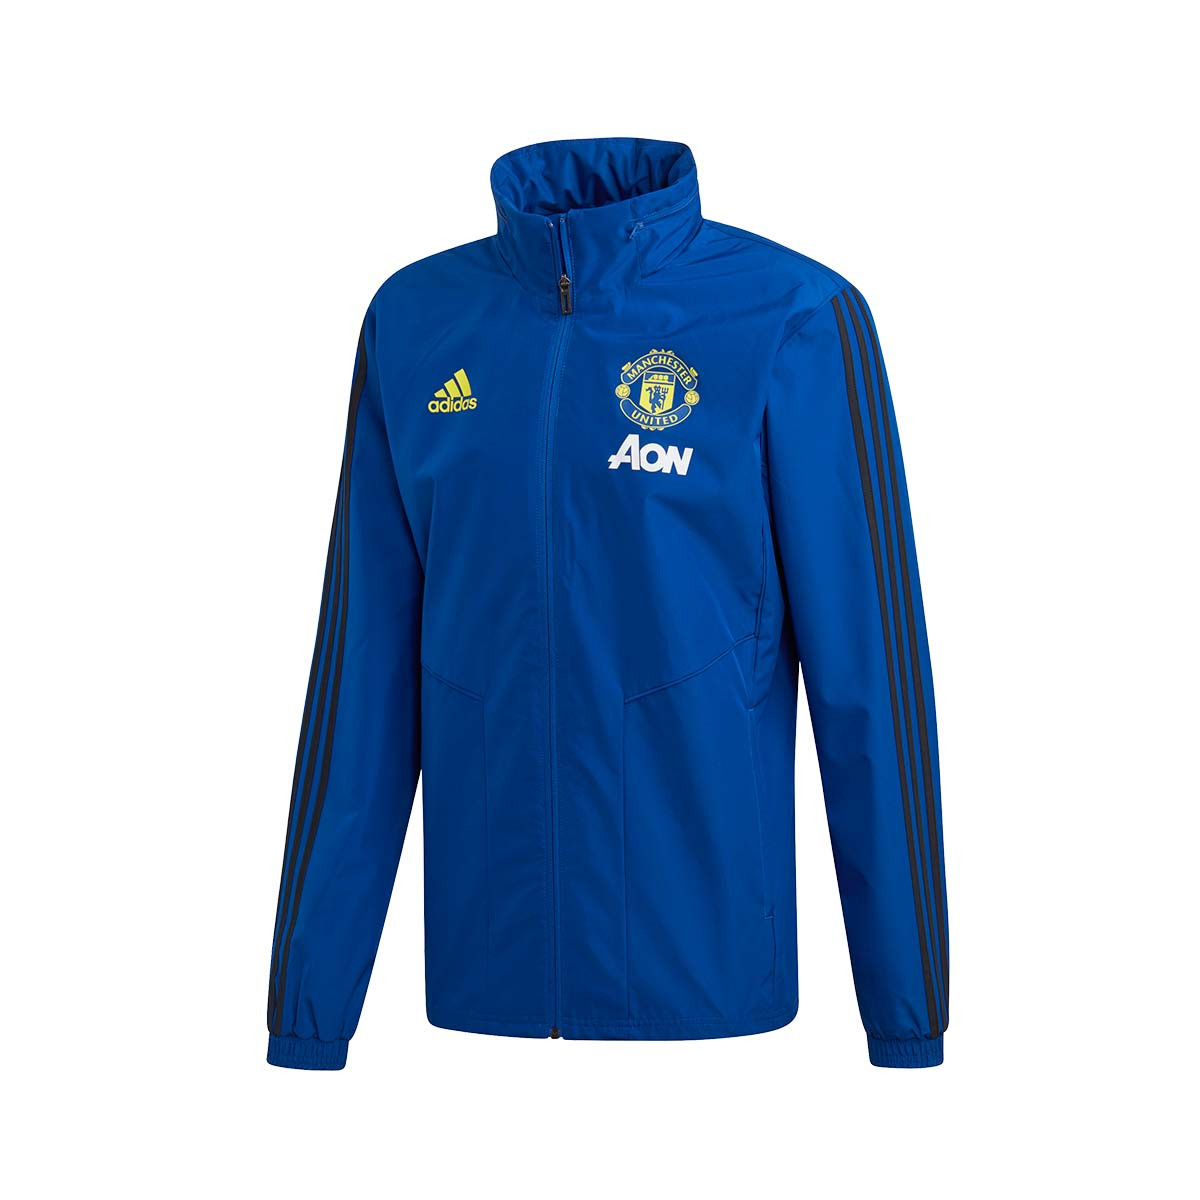 Jacket Adidas Manchester United Fc Aw 2019 2020 Collegiate Royal